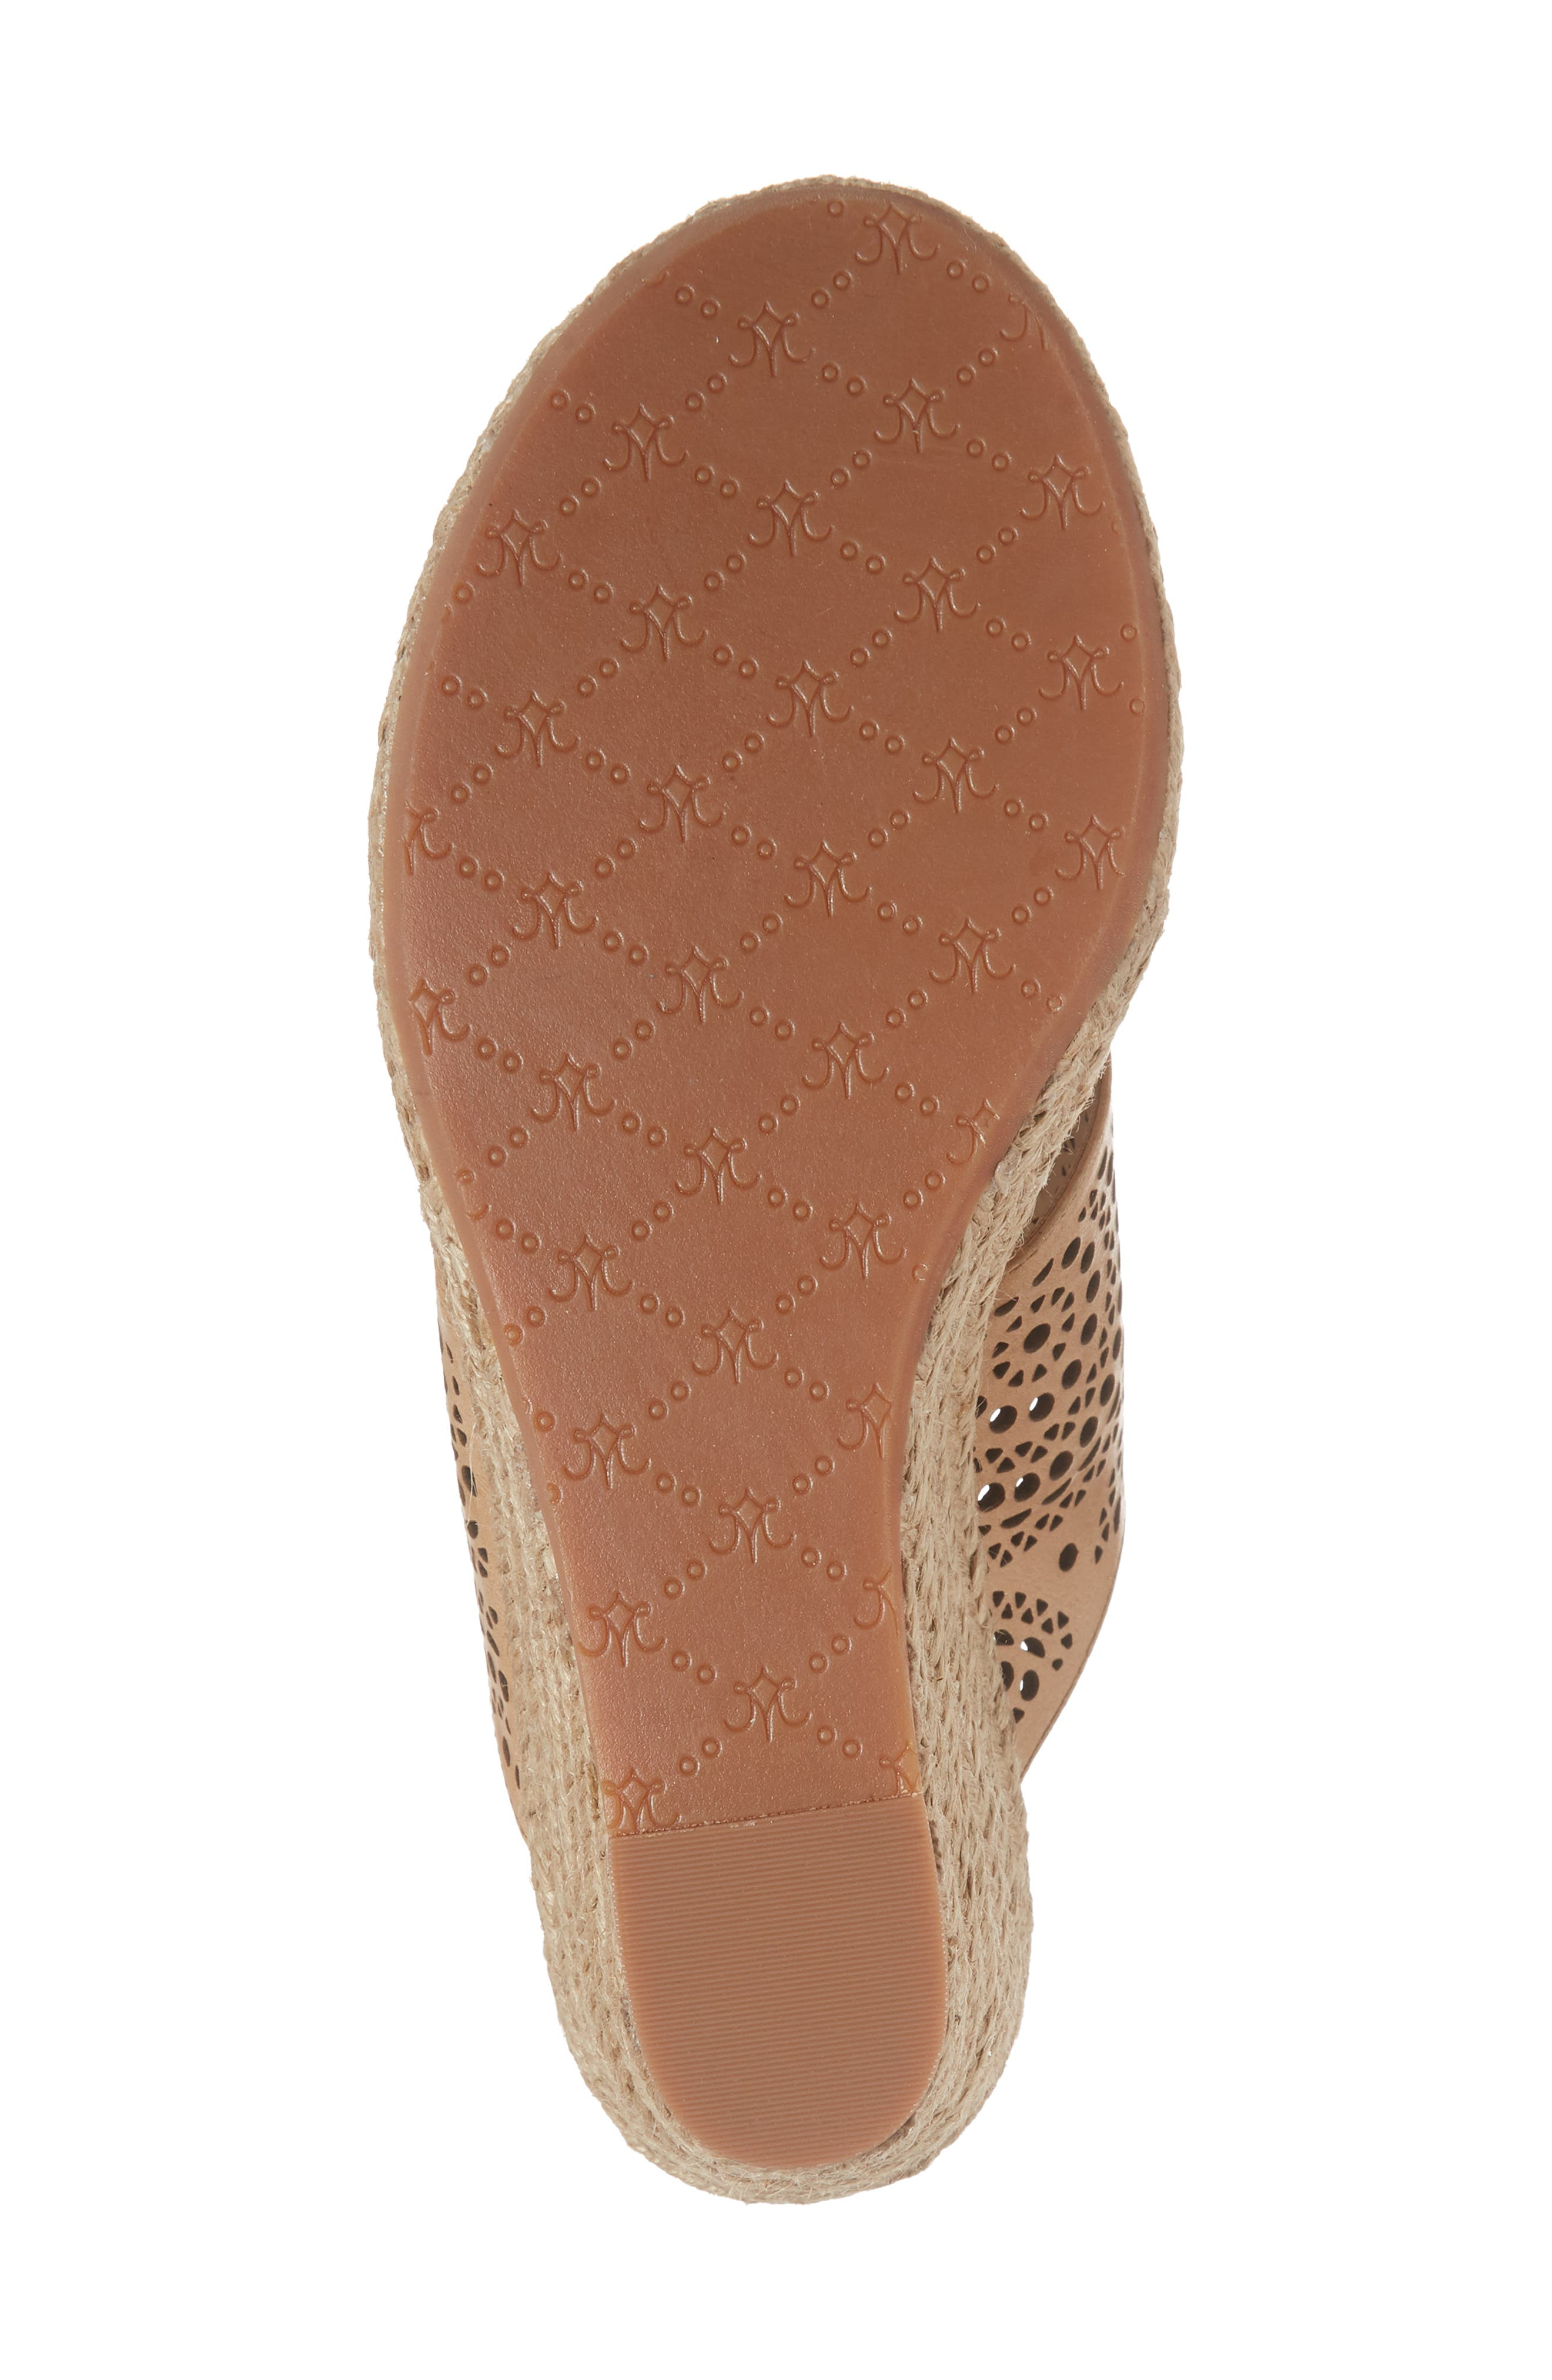 Gina Wedge Sandal,                             Alternate thumbnail 6, color,                             Tan Leather